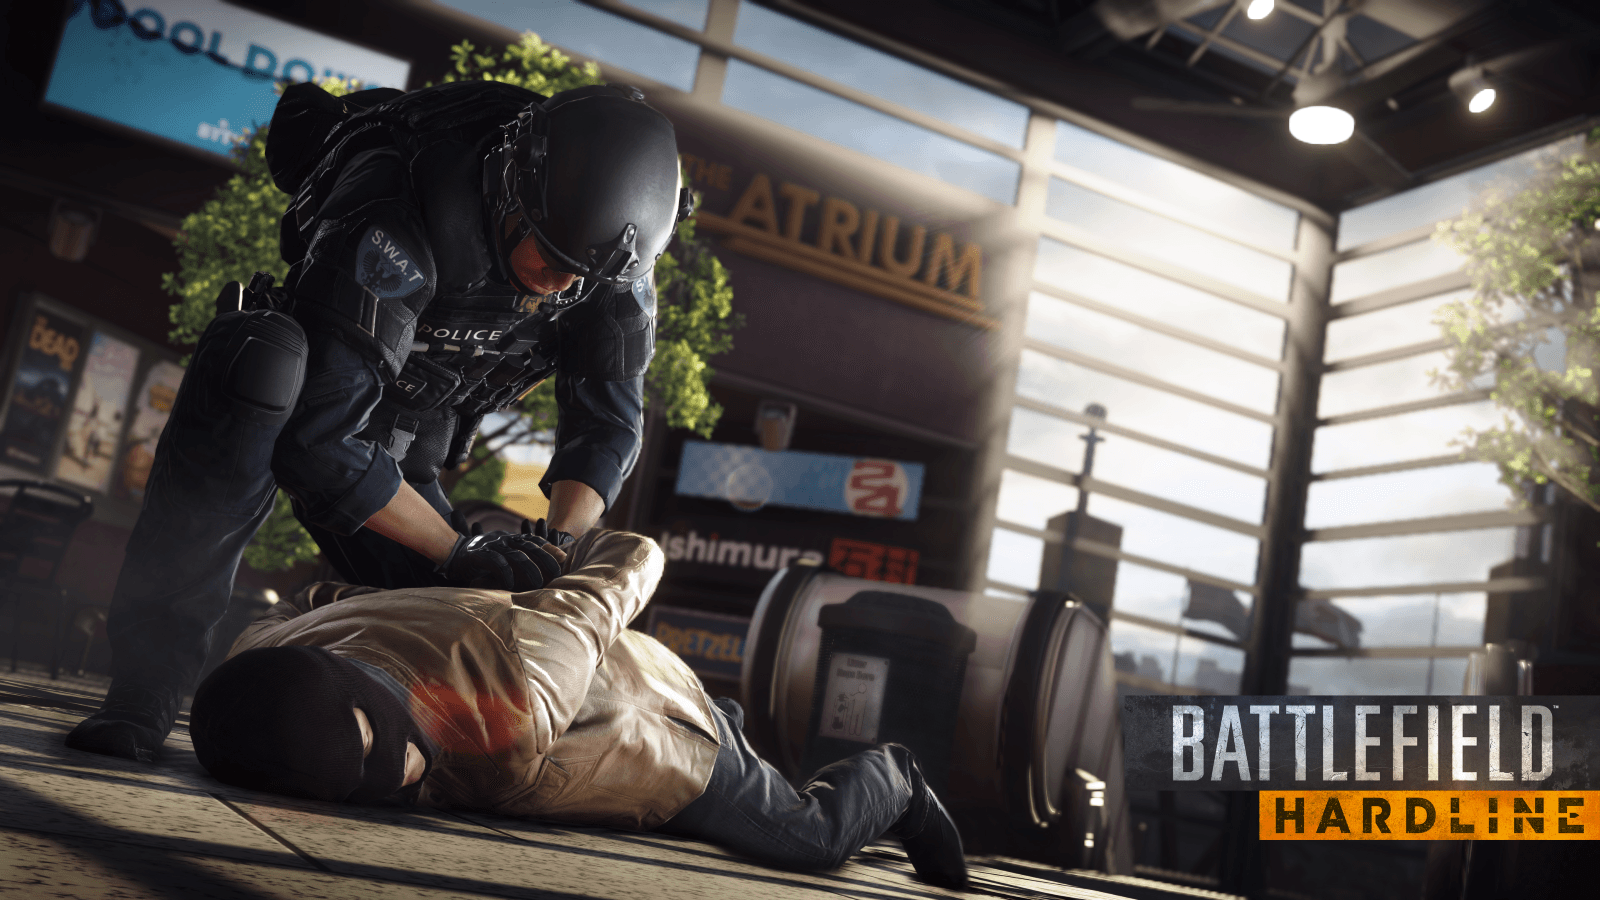 Battlefield Hardline Joins the EA Access Vault news header